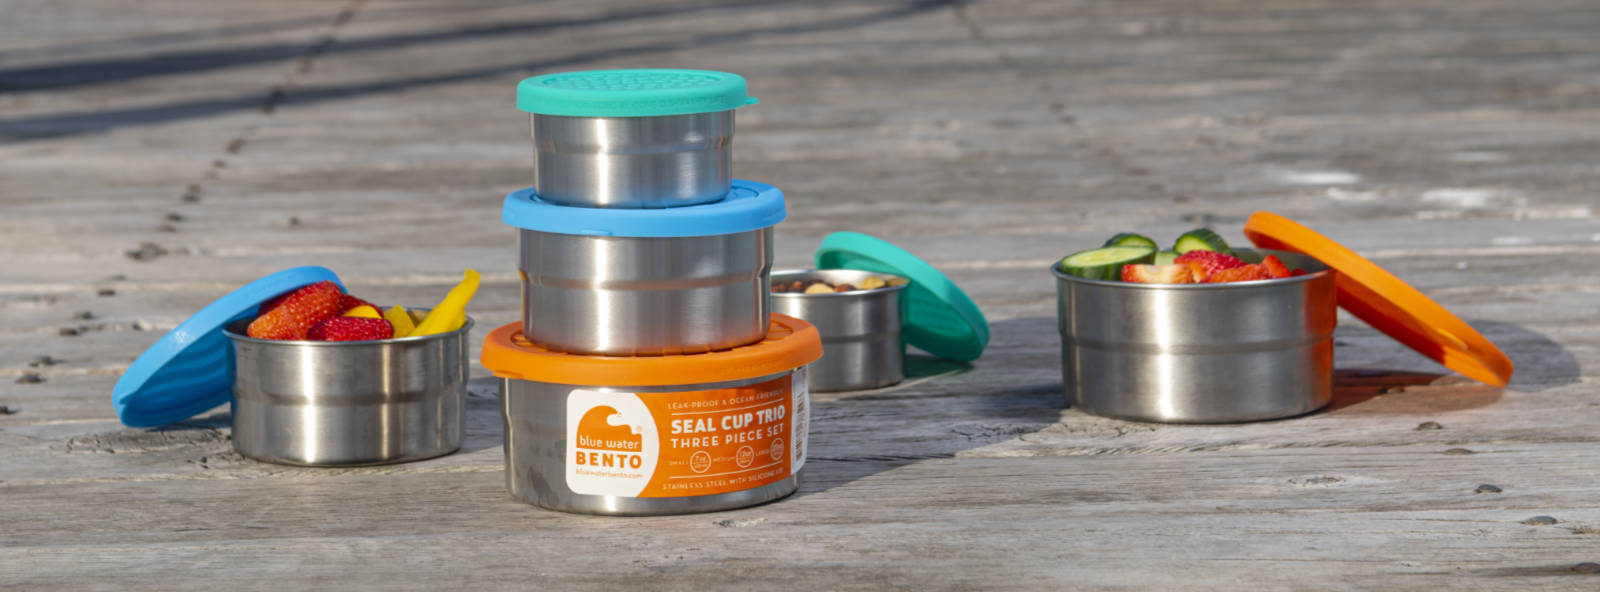 ECOlunchbox Seal Cups and containers on dock near the ocean.